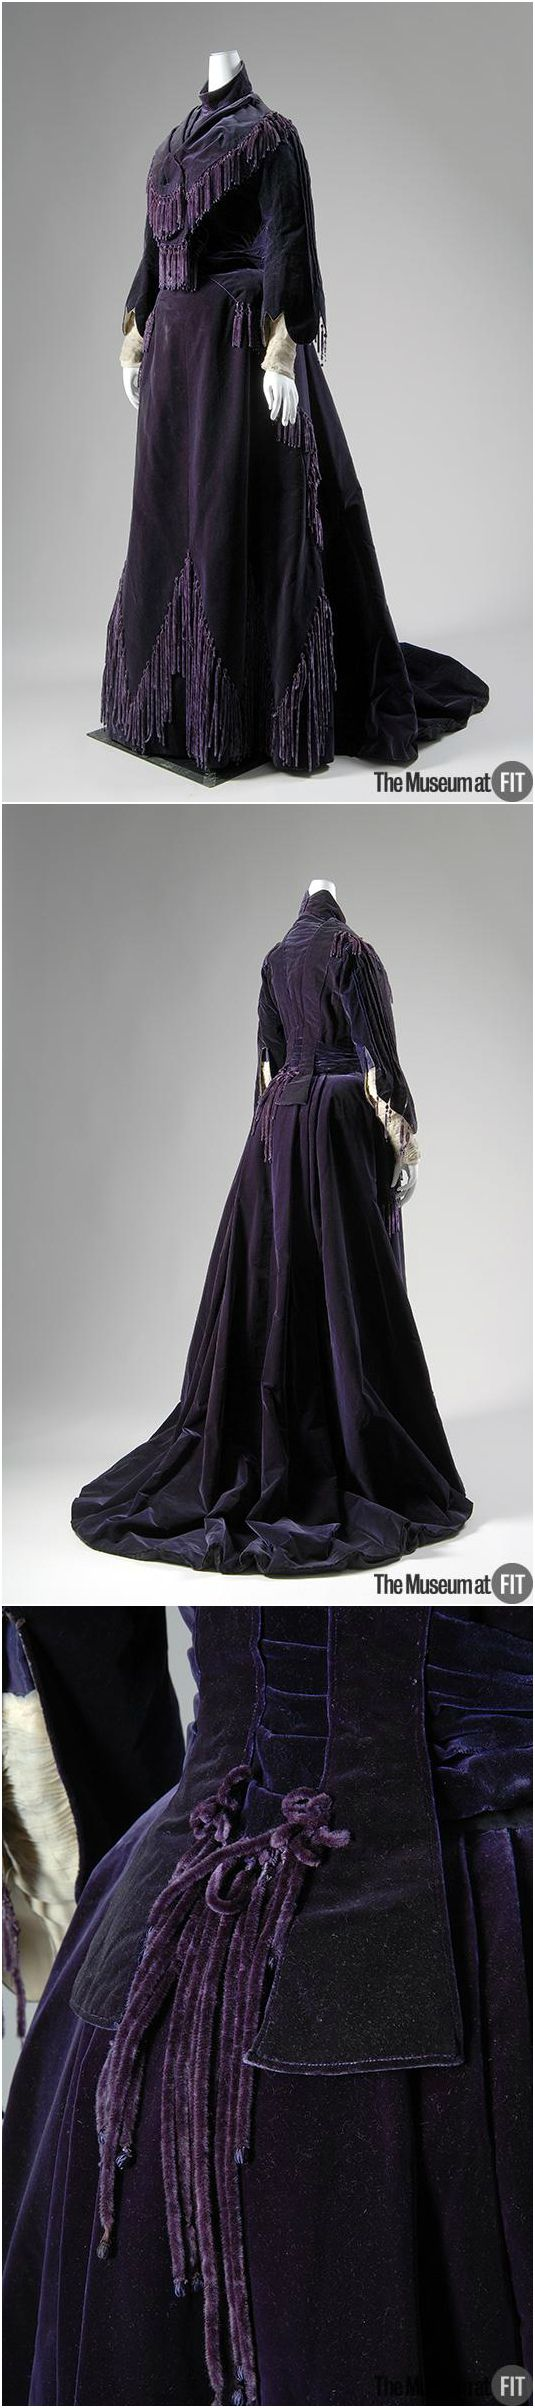 Afternoon dress, by the House of Worth, 1903, The Museum at FIT. See: http://fashionmuseum.fitnyc.edu/view/objects/asitem/760/32/dynasty-desc?t:state:flow=1c4c7399-8576-4b87-8f66-e8e6bcd47c13